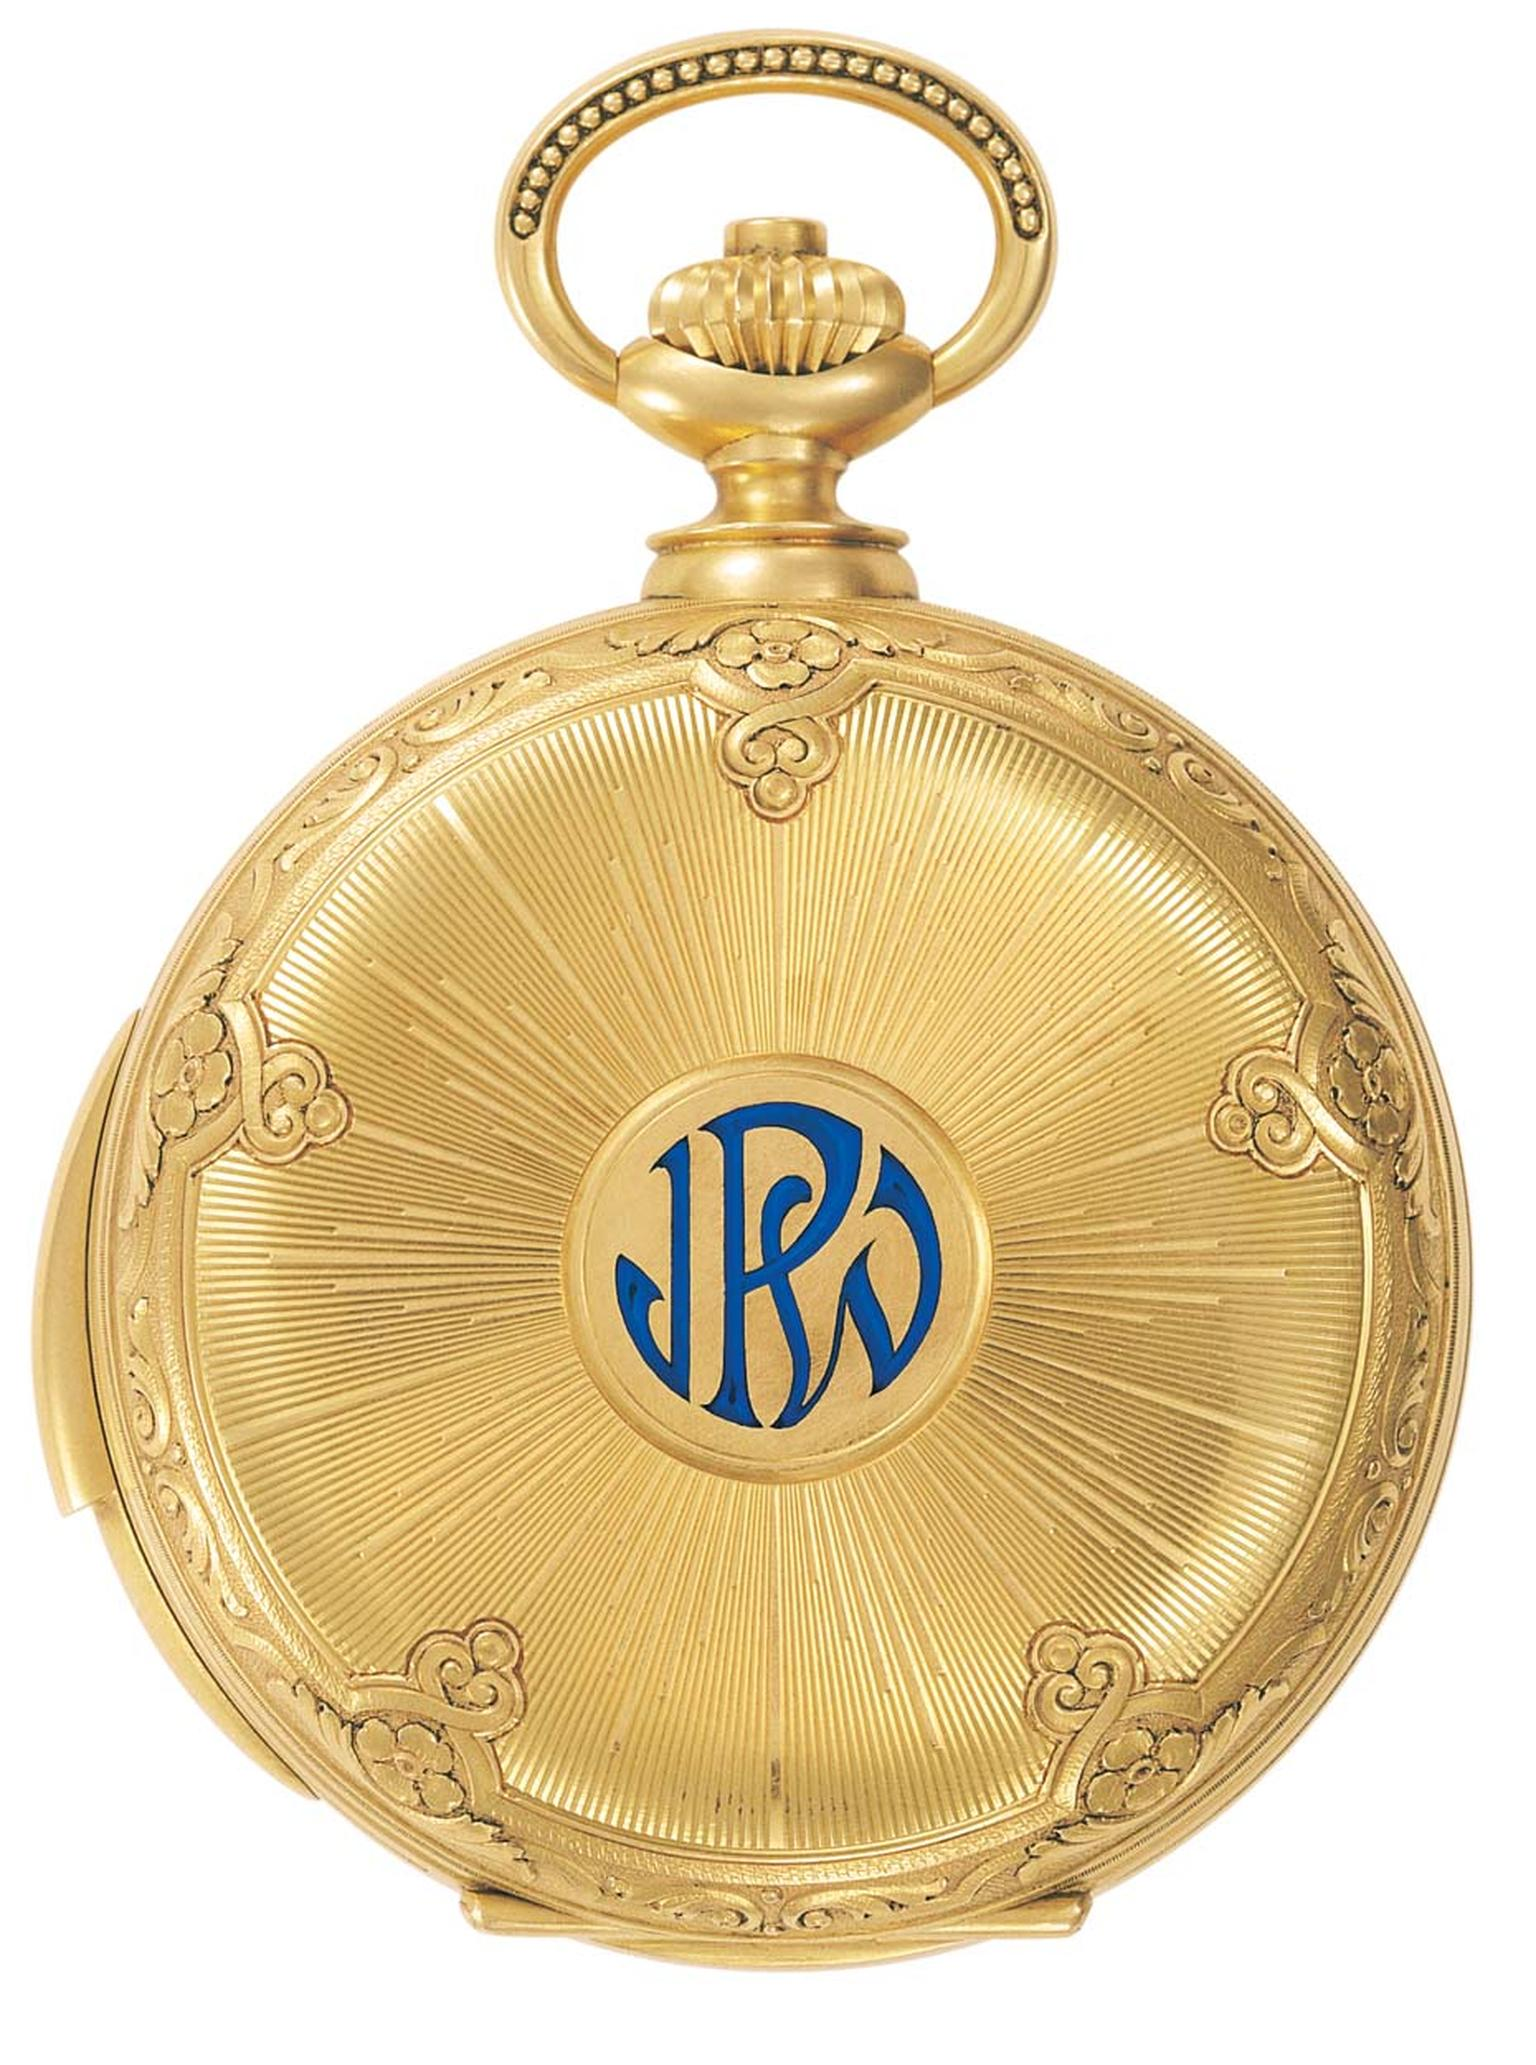 The reverse of James Ward Packard's astronomical pocket watch.